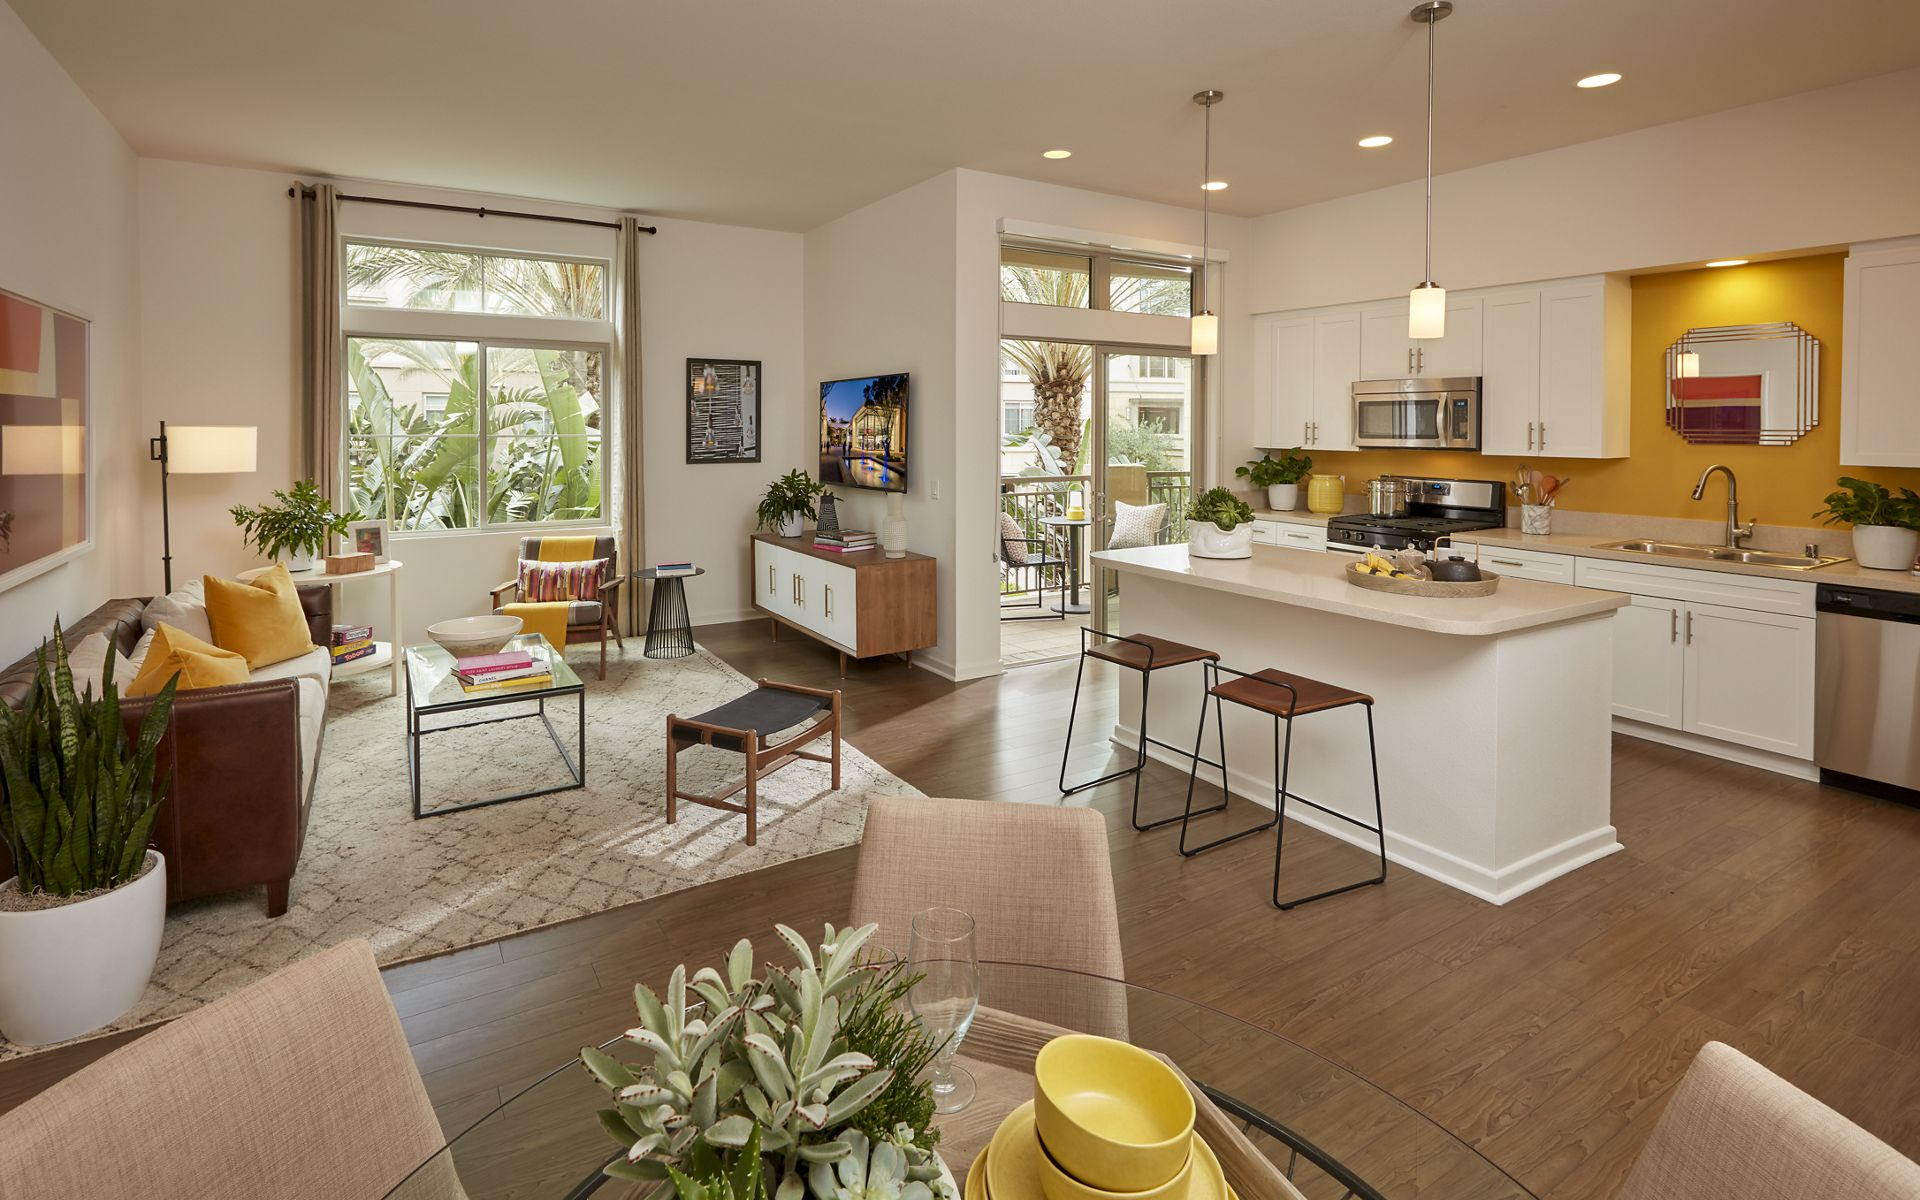 Interior view of living room and kitchen at Centerpointe at Irvine Spectrum Apartment Homes in Irvine, CA.